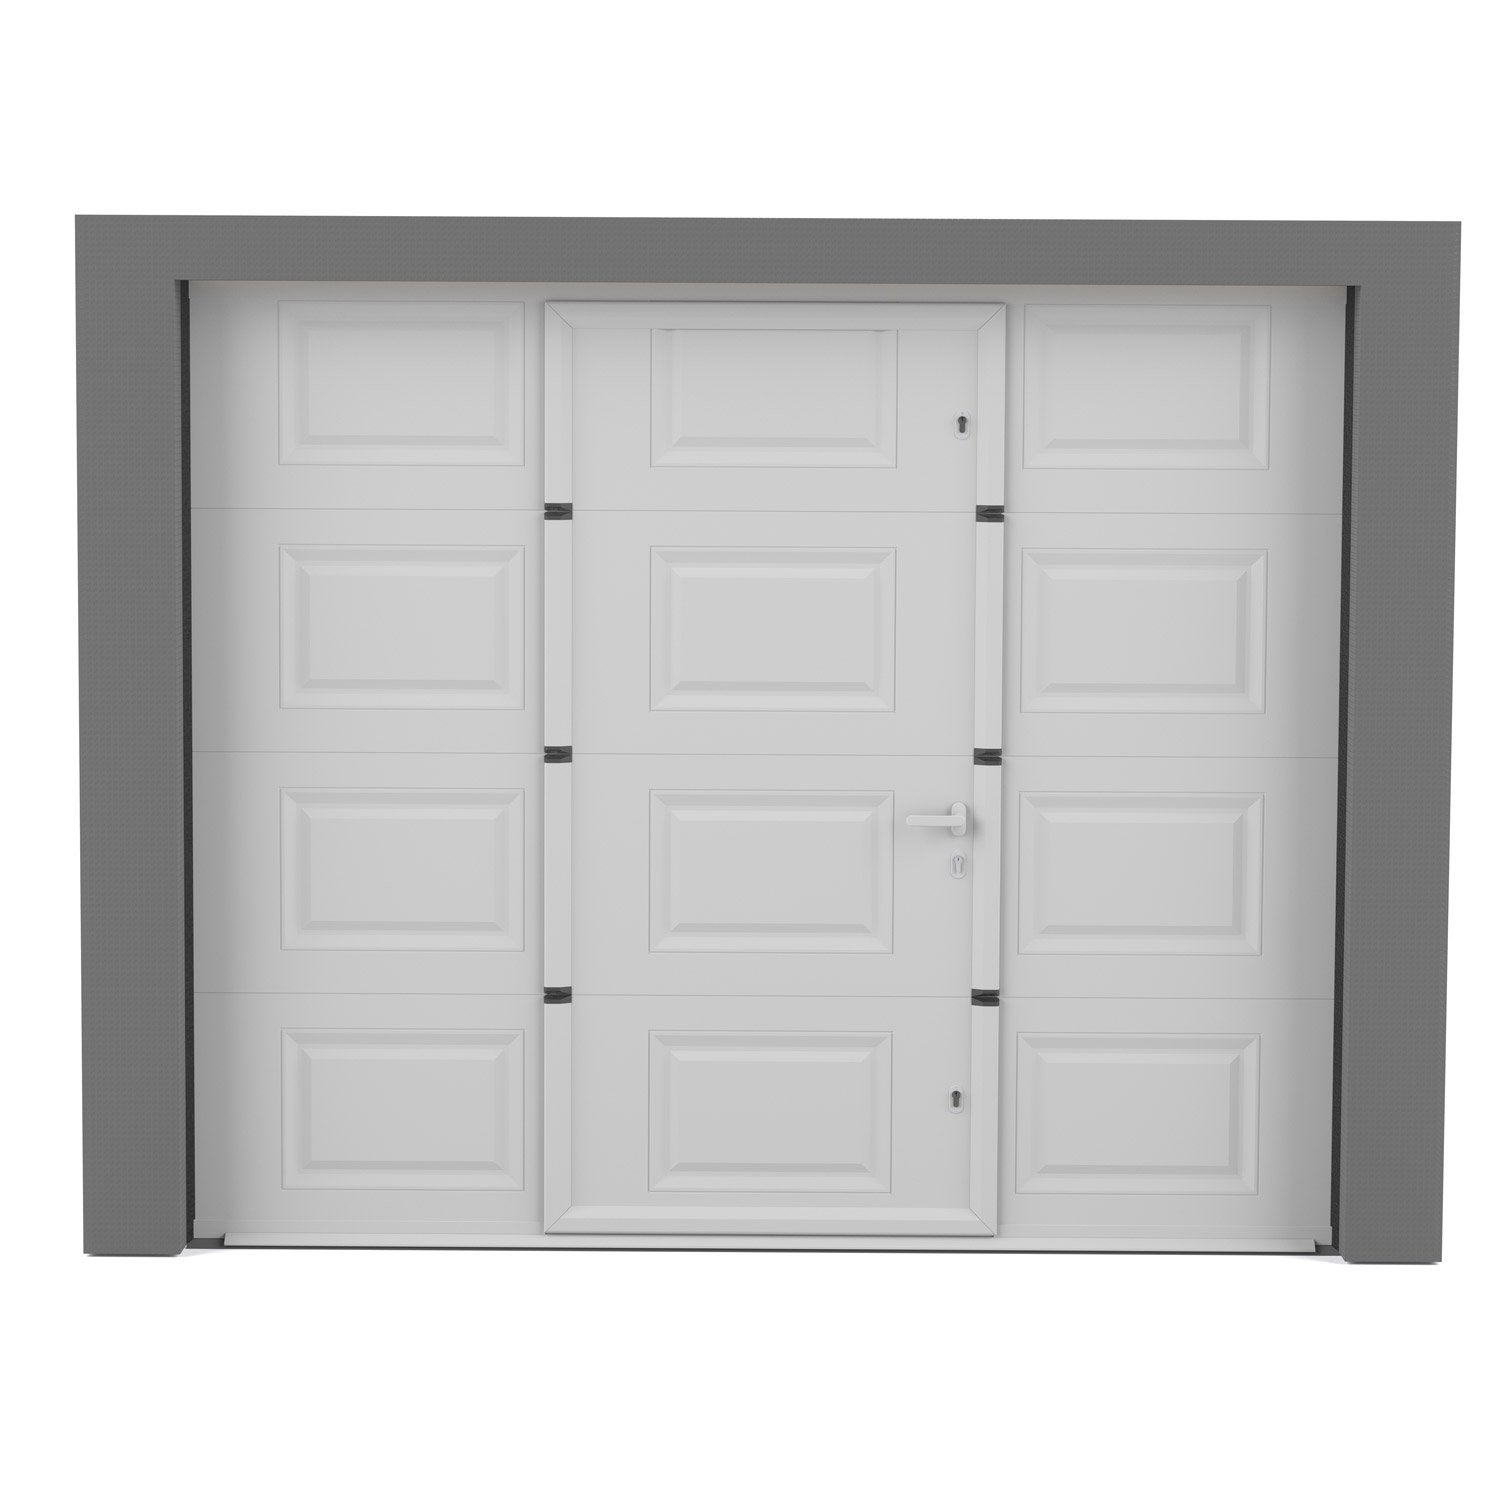 Porte de garage sectionnelle motoris e artens essentiel for Porte exterieur de jardin leroy merlin